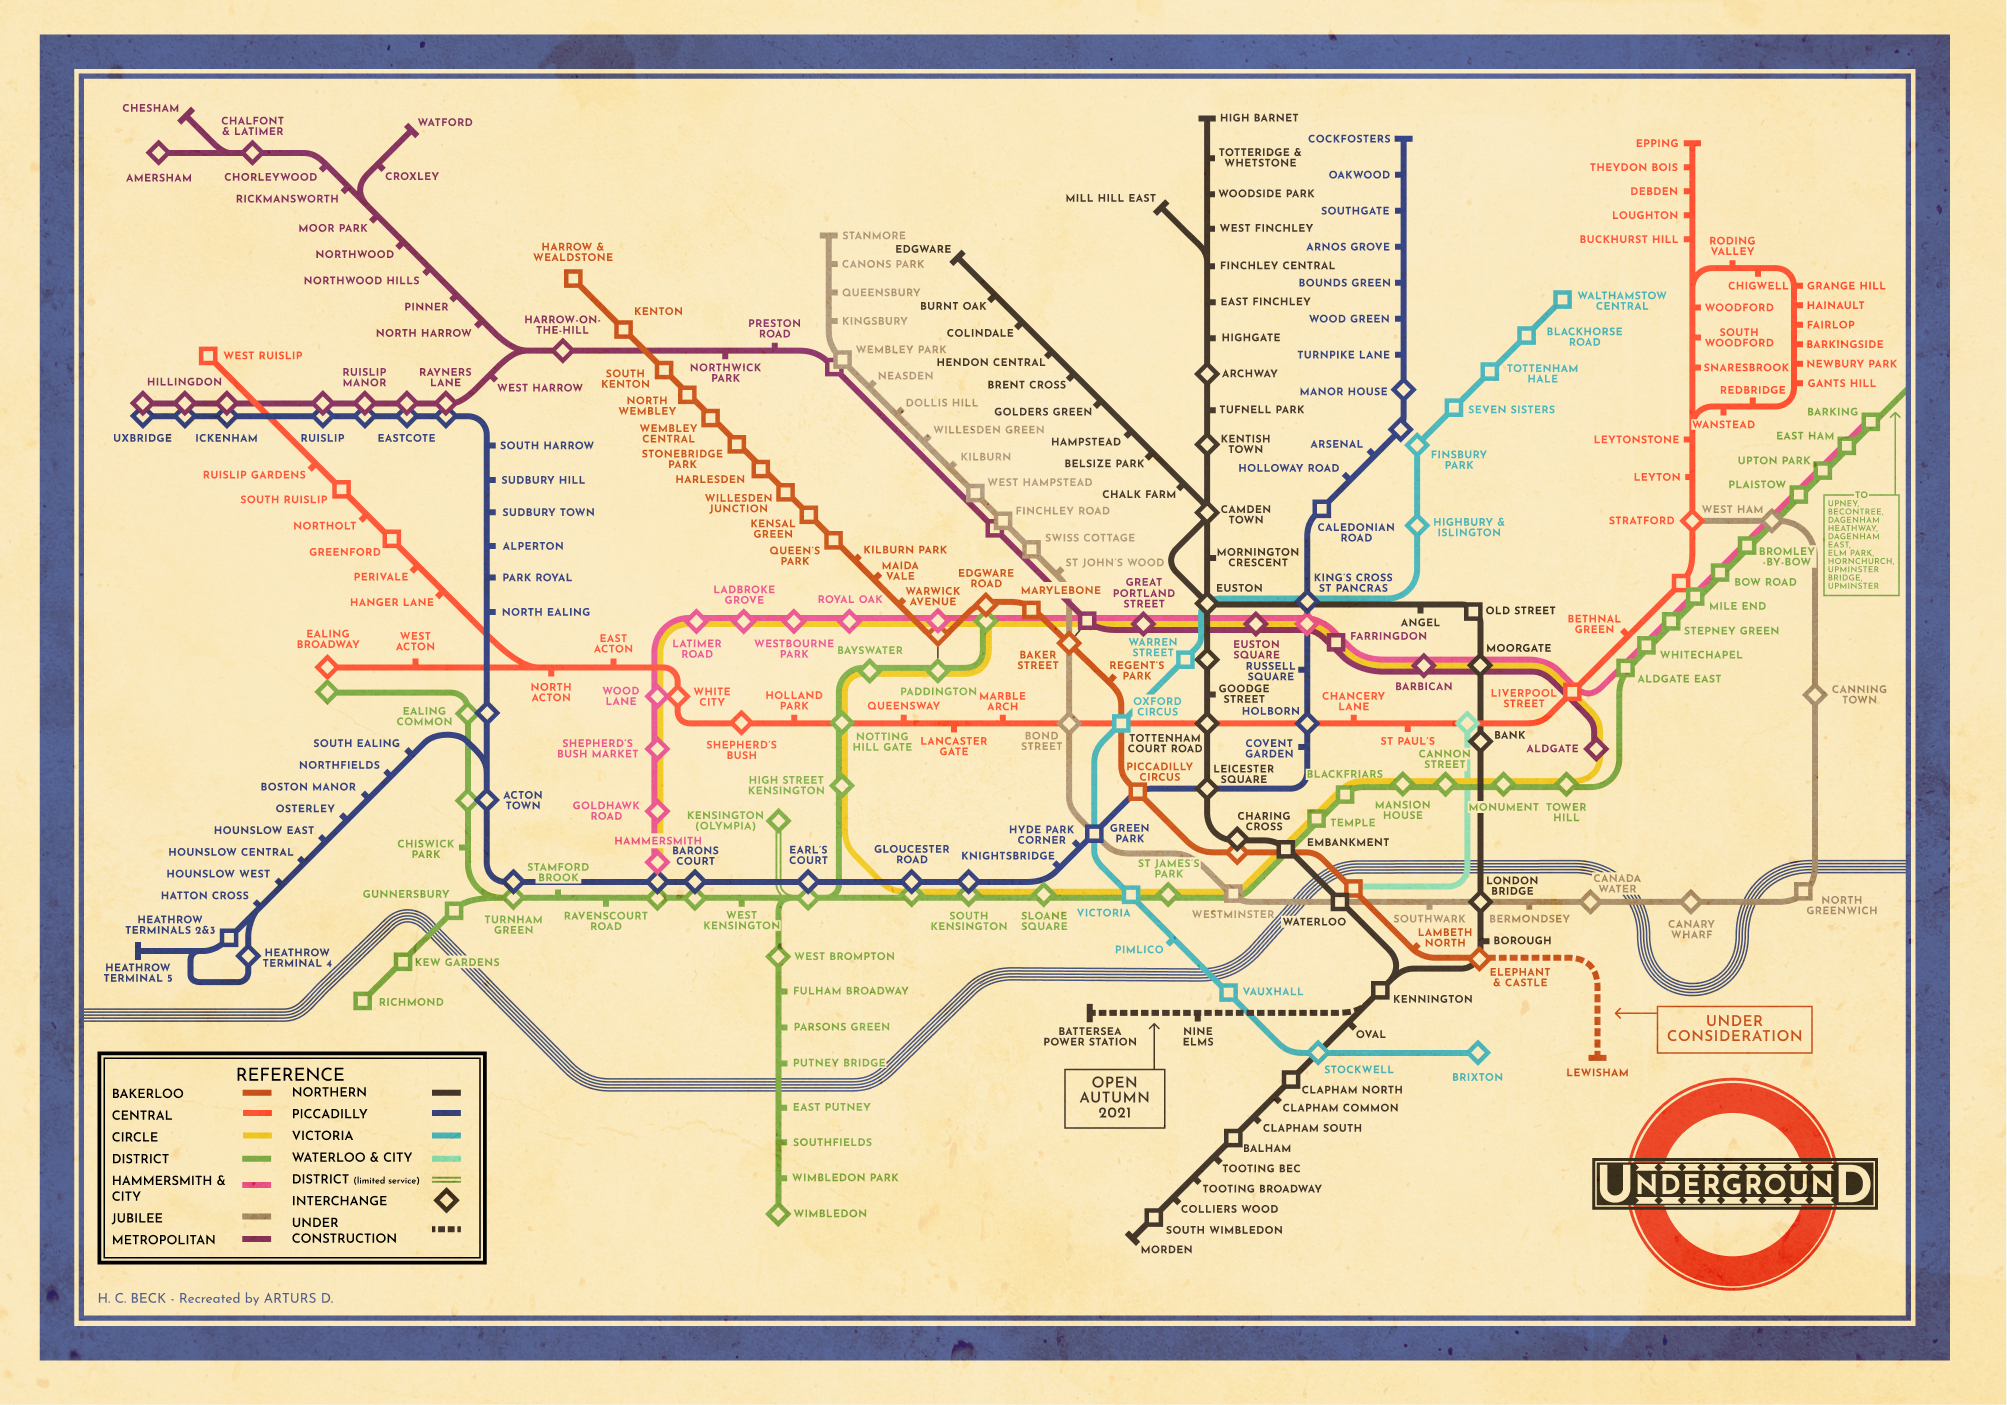 Harry Beck's original tube map recreated to portray the modern 2020 tube network